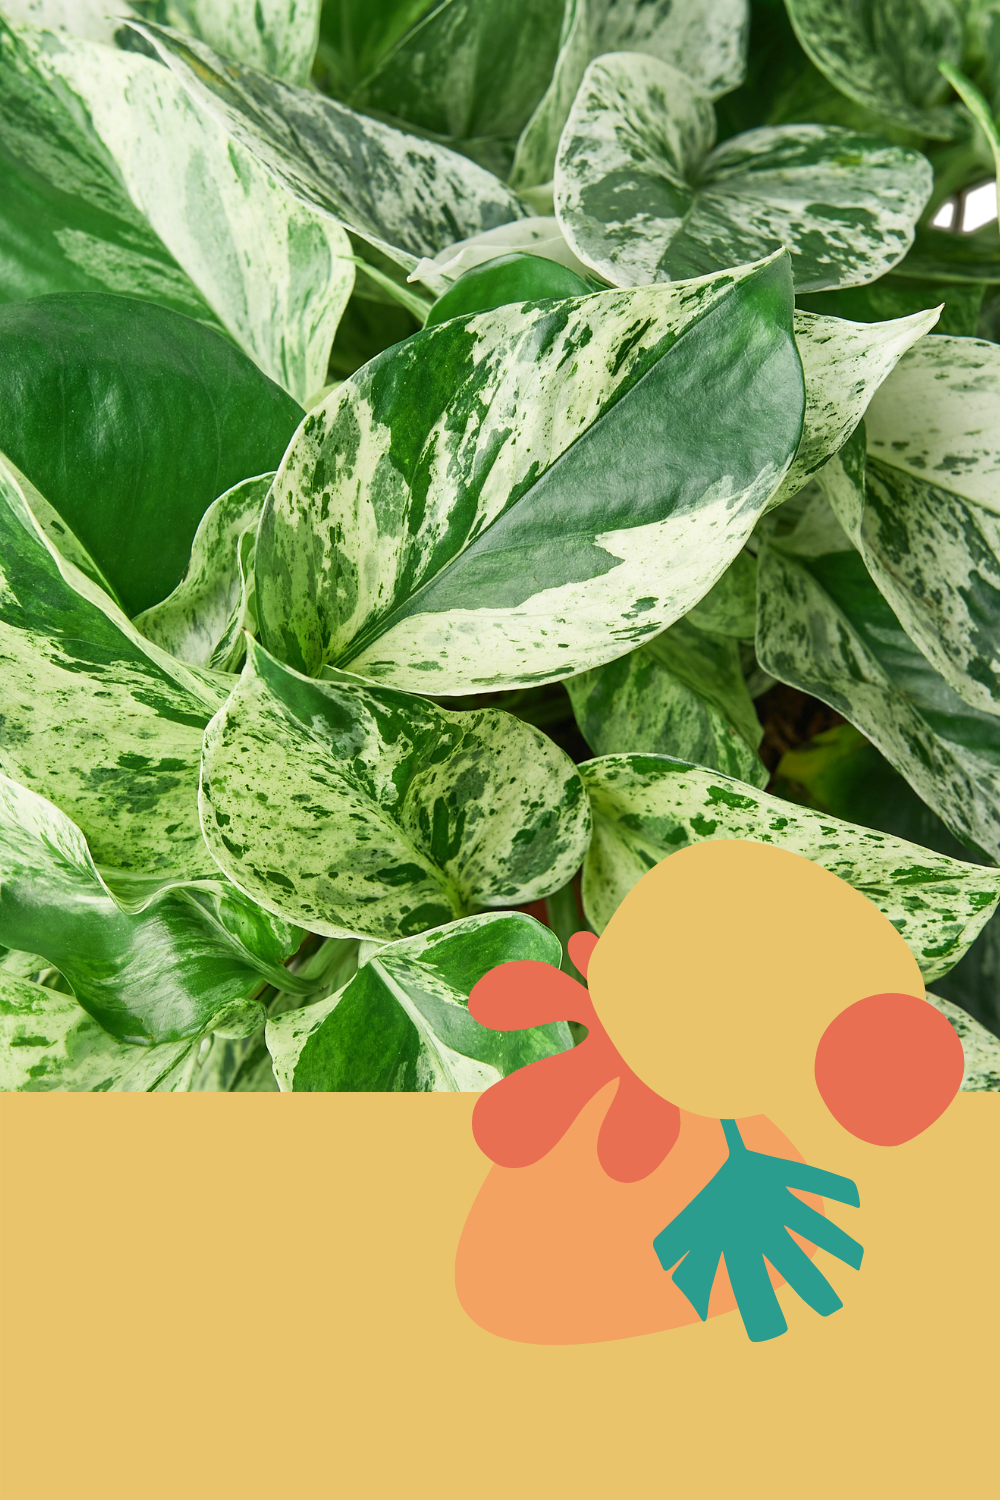 Green Door Garden, Marble Queen Pothos, Snow Queen, White Variegation Pothos, Epipremnum Aureum Marble Queen, 4 in Pothos, Variegated Plants